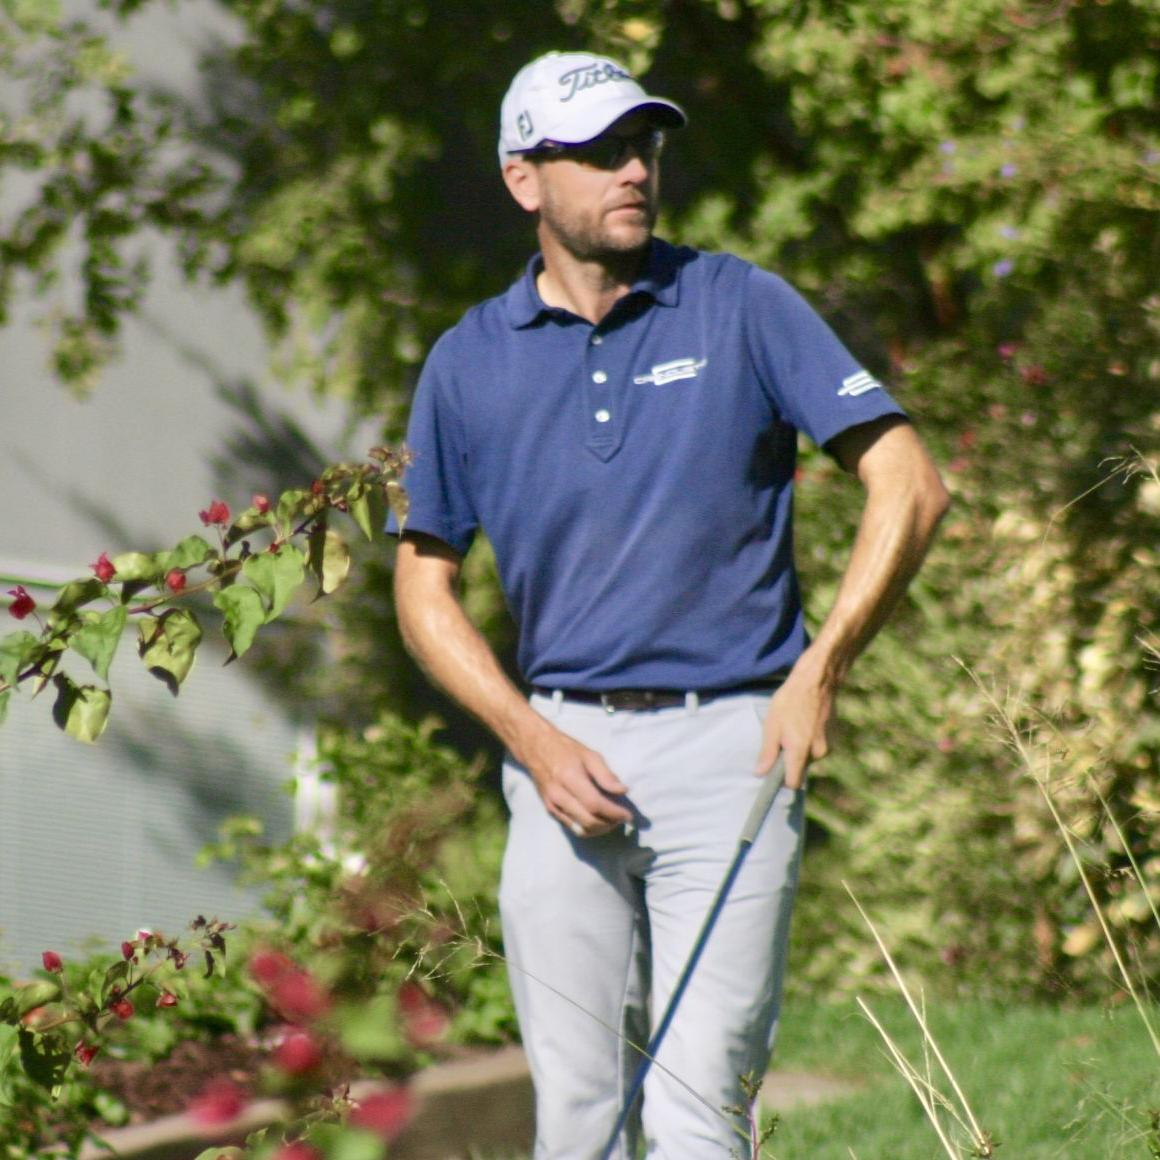 River Falls' Neil Johnson shoots second-straight 70, inches into 15th place at PGA Tour-Latinoamerica Q-School